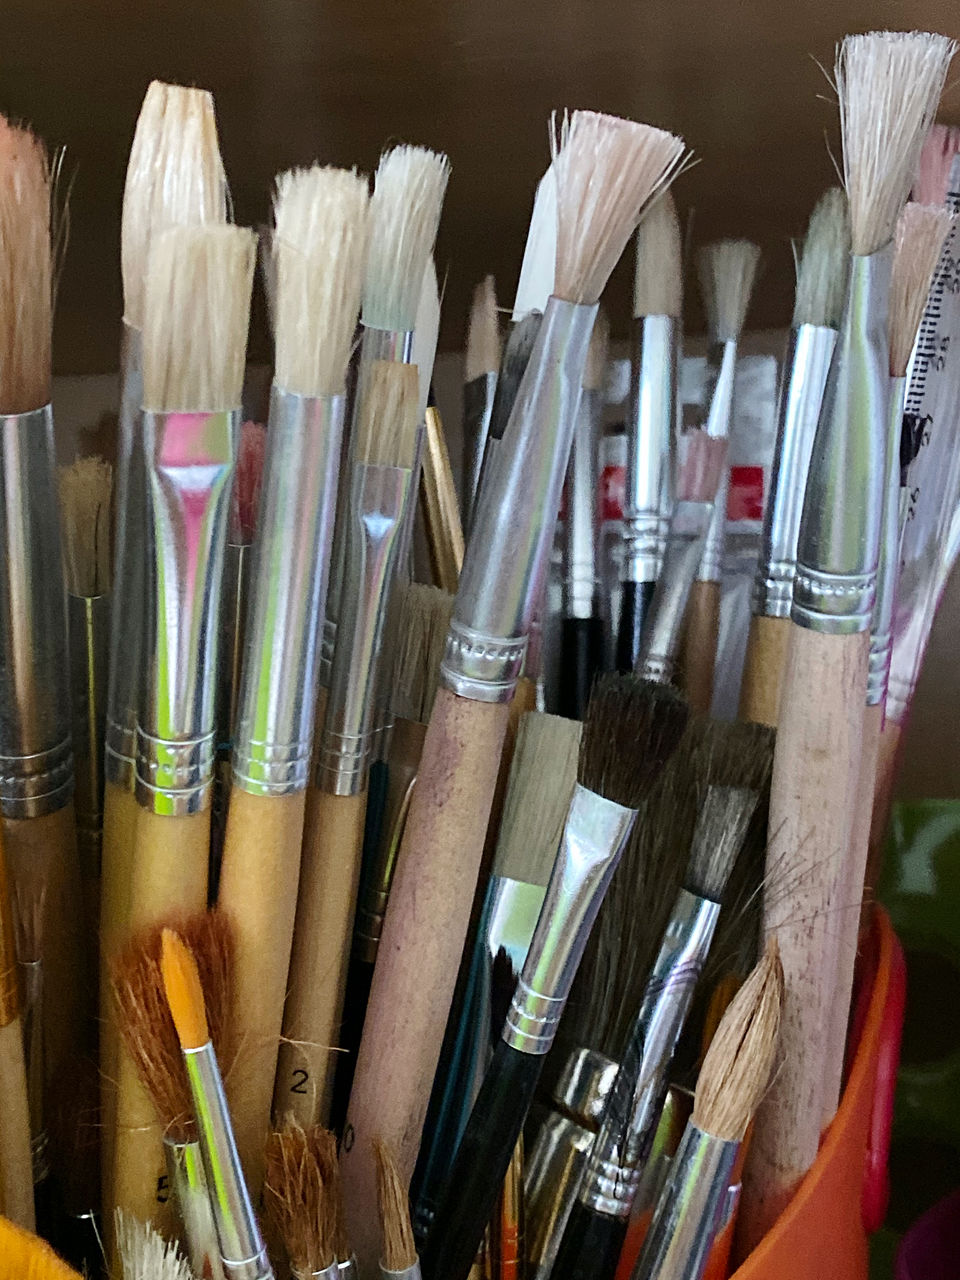 brush, paintbrush, choice, still life, art and craft, large group of objects, variation, no people, indoors, multi colored, craft, close-up, art and craft equipment, creativity, container, abundance, collection, wood - material, pen, arrangement